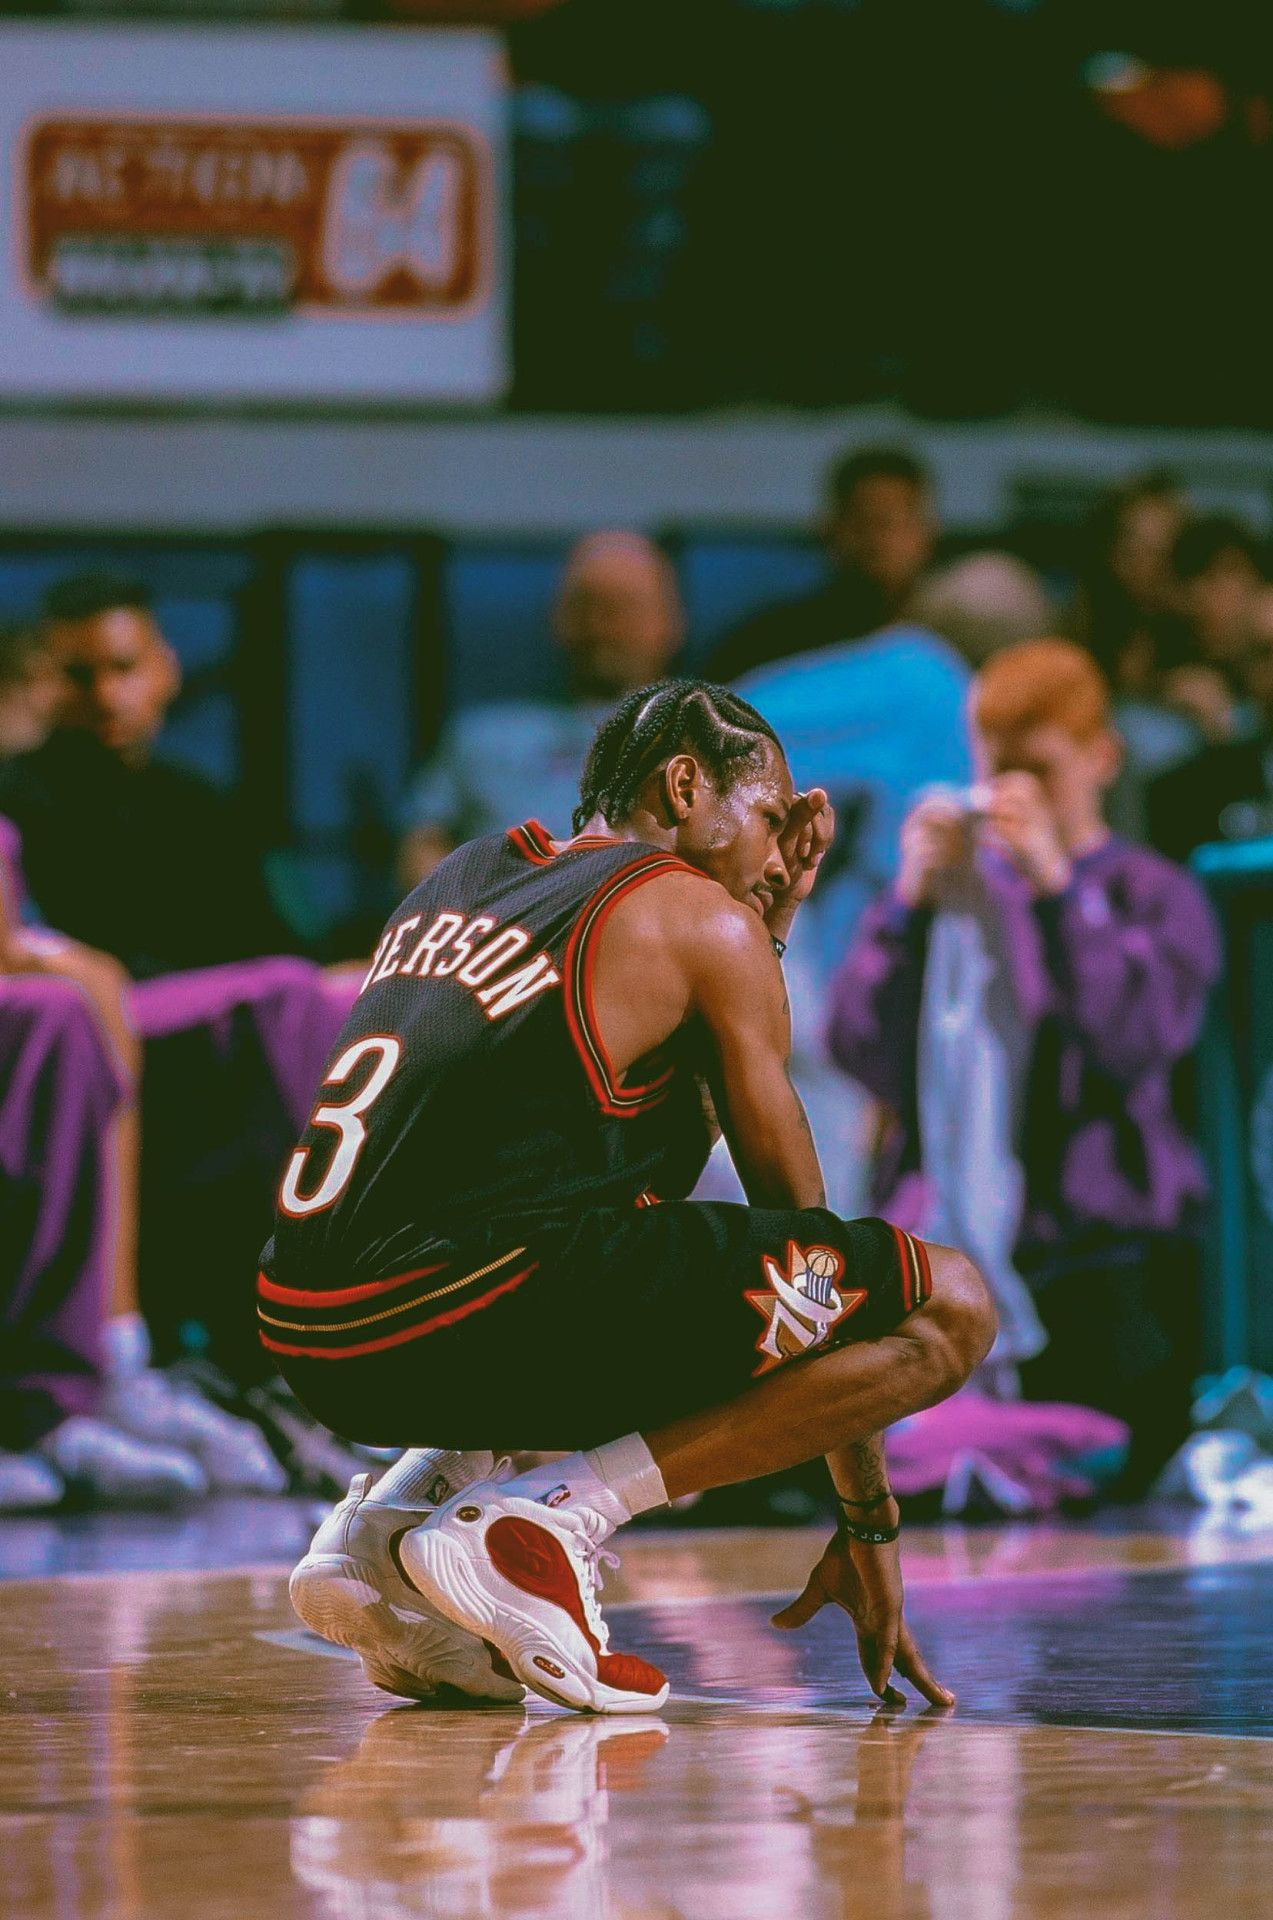 Strapped Archives In 2021 Nba Fashion Kobe Bryant Pictures Basketball Photography